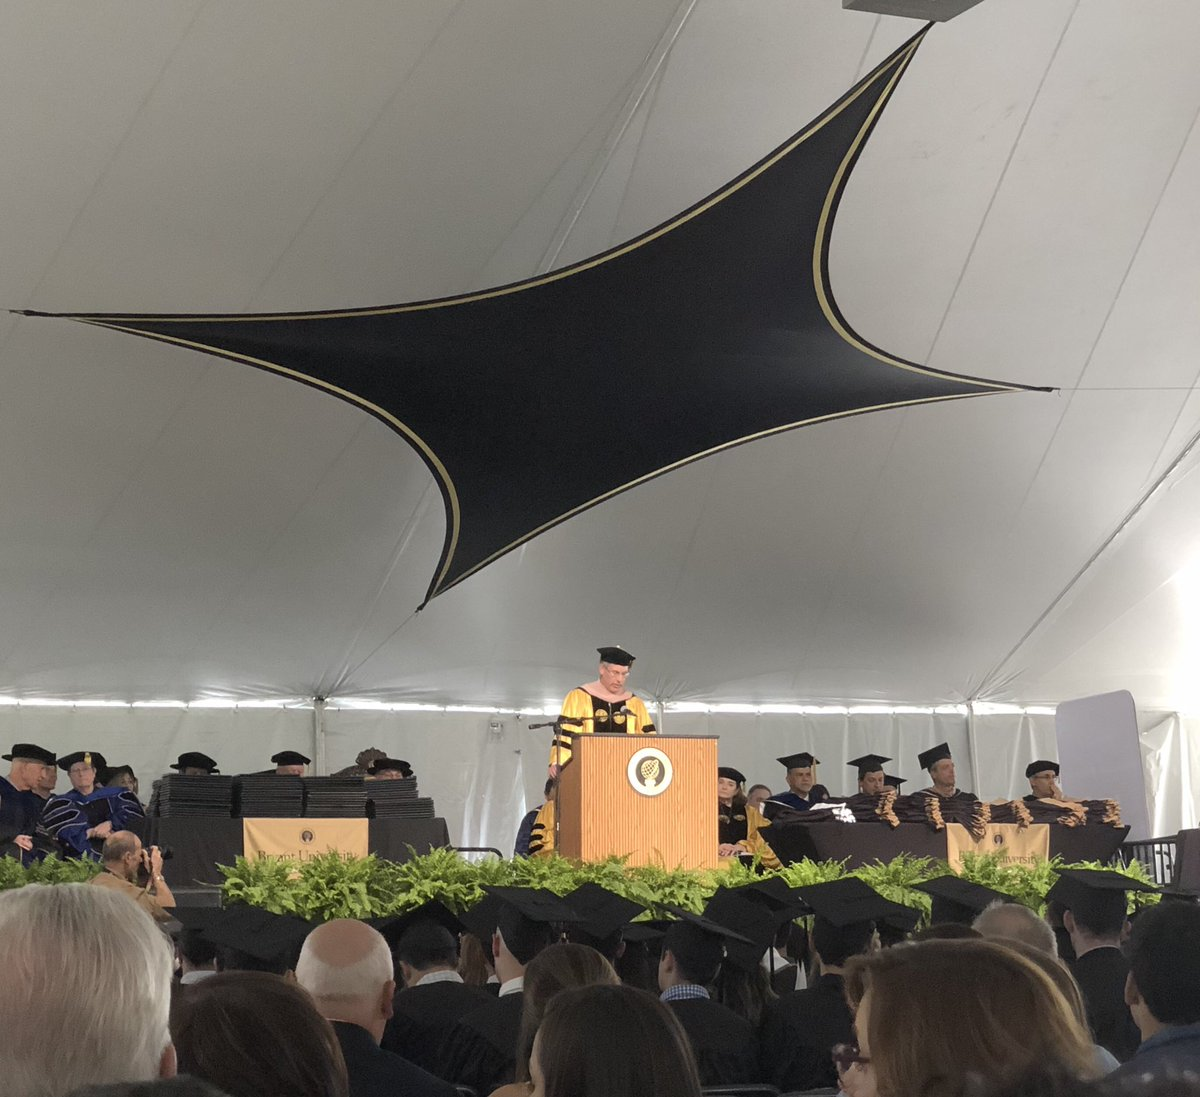 """Honorary degree recipient and @WashTrust CEO Edward """"Ned"""" O. Handy III gives the commencement address at Bryant's annual Graduate Programs Commencement. #BryantGrad2019"""